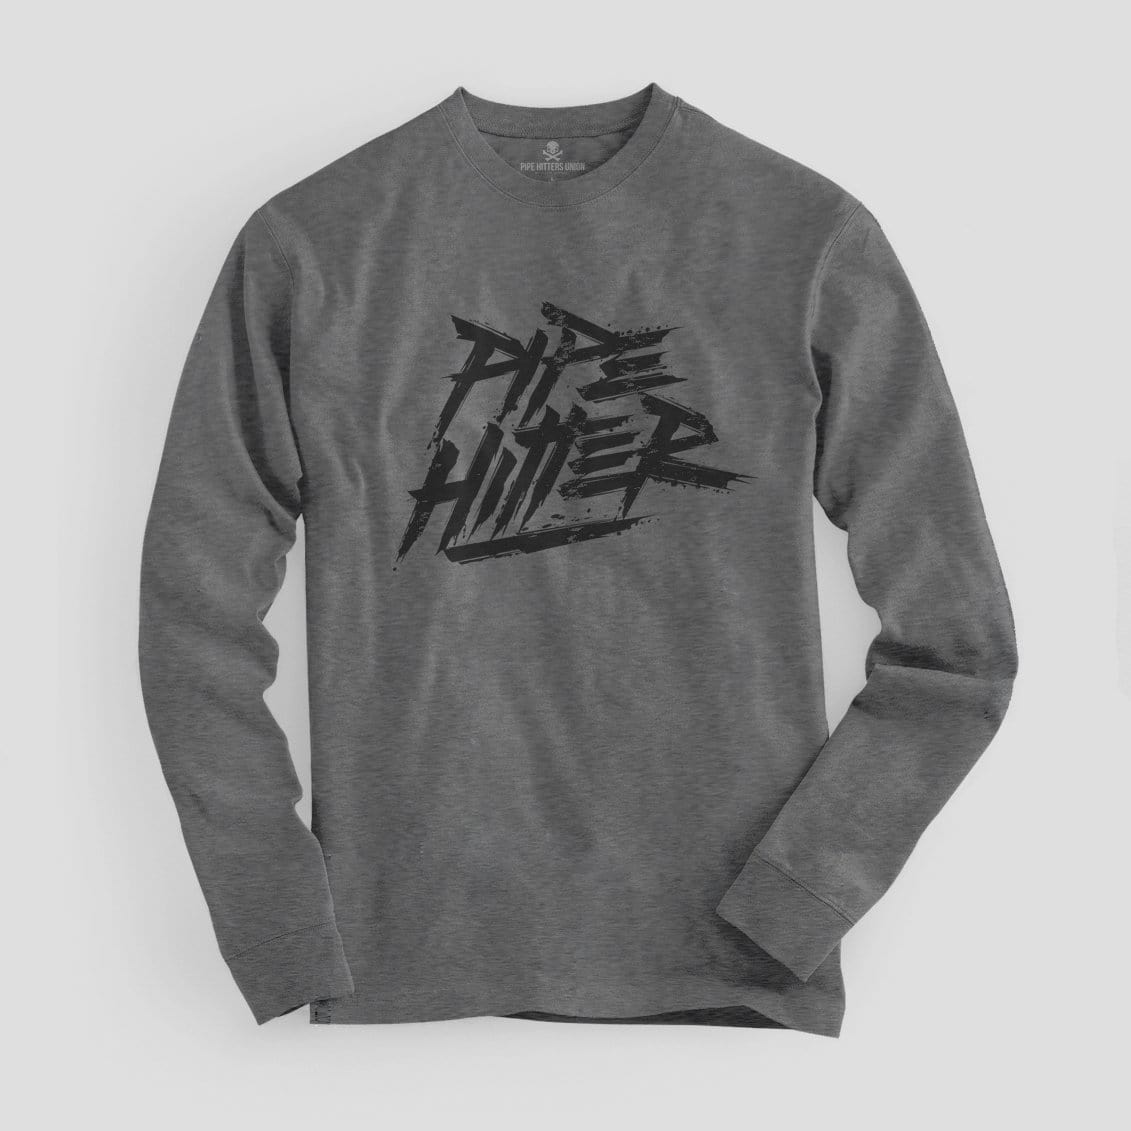 Pipe Hitter - Long Sleeve - Grey/Black - T-Shirts - Pipe Hitters Union